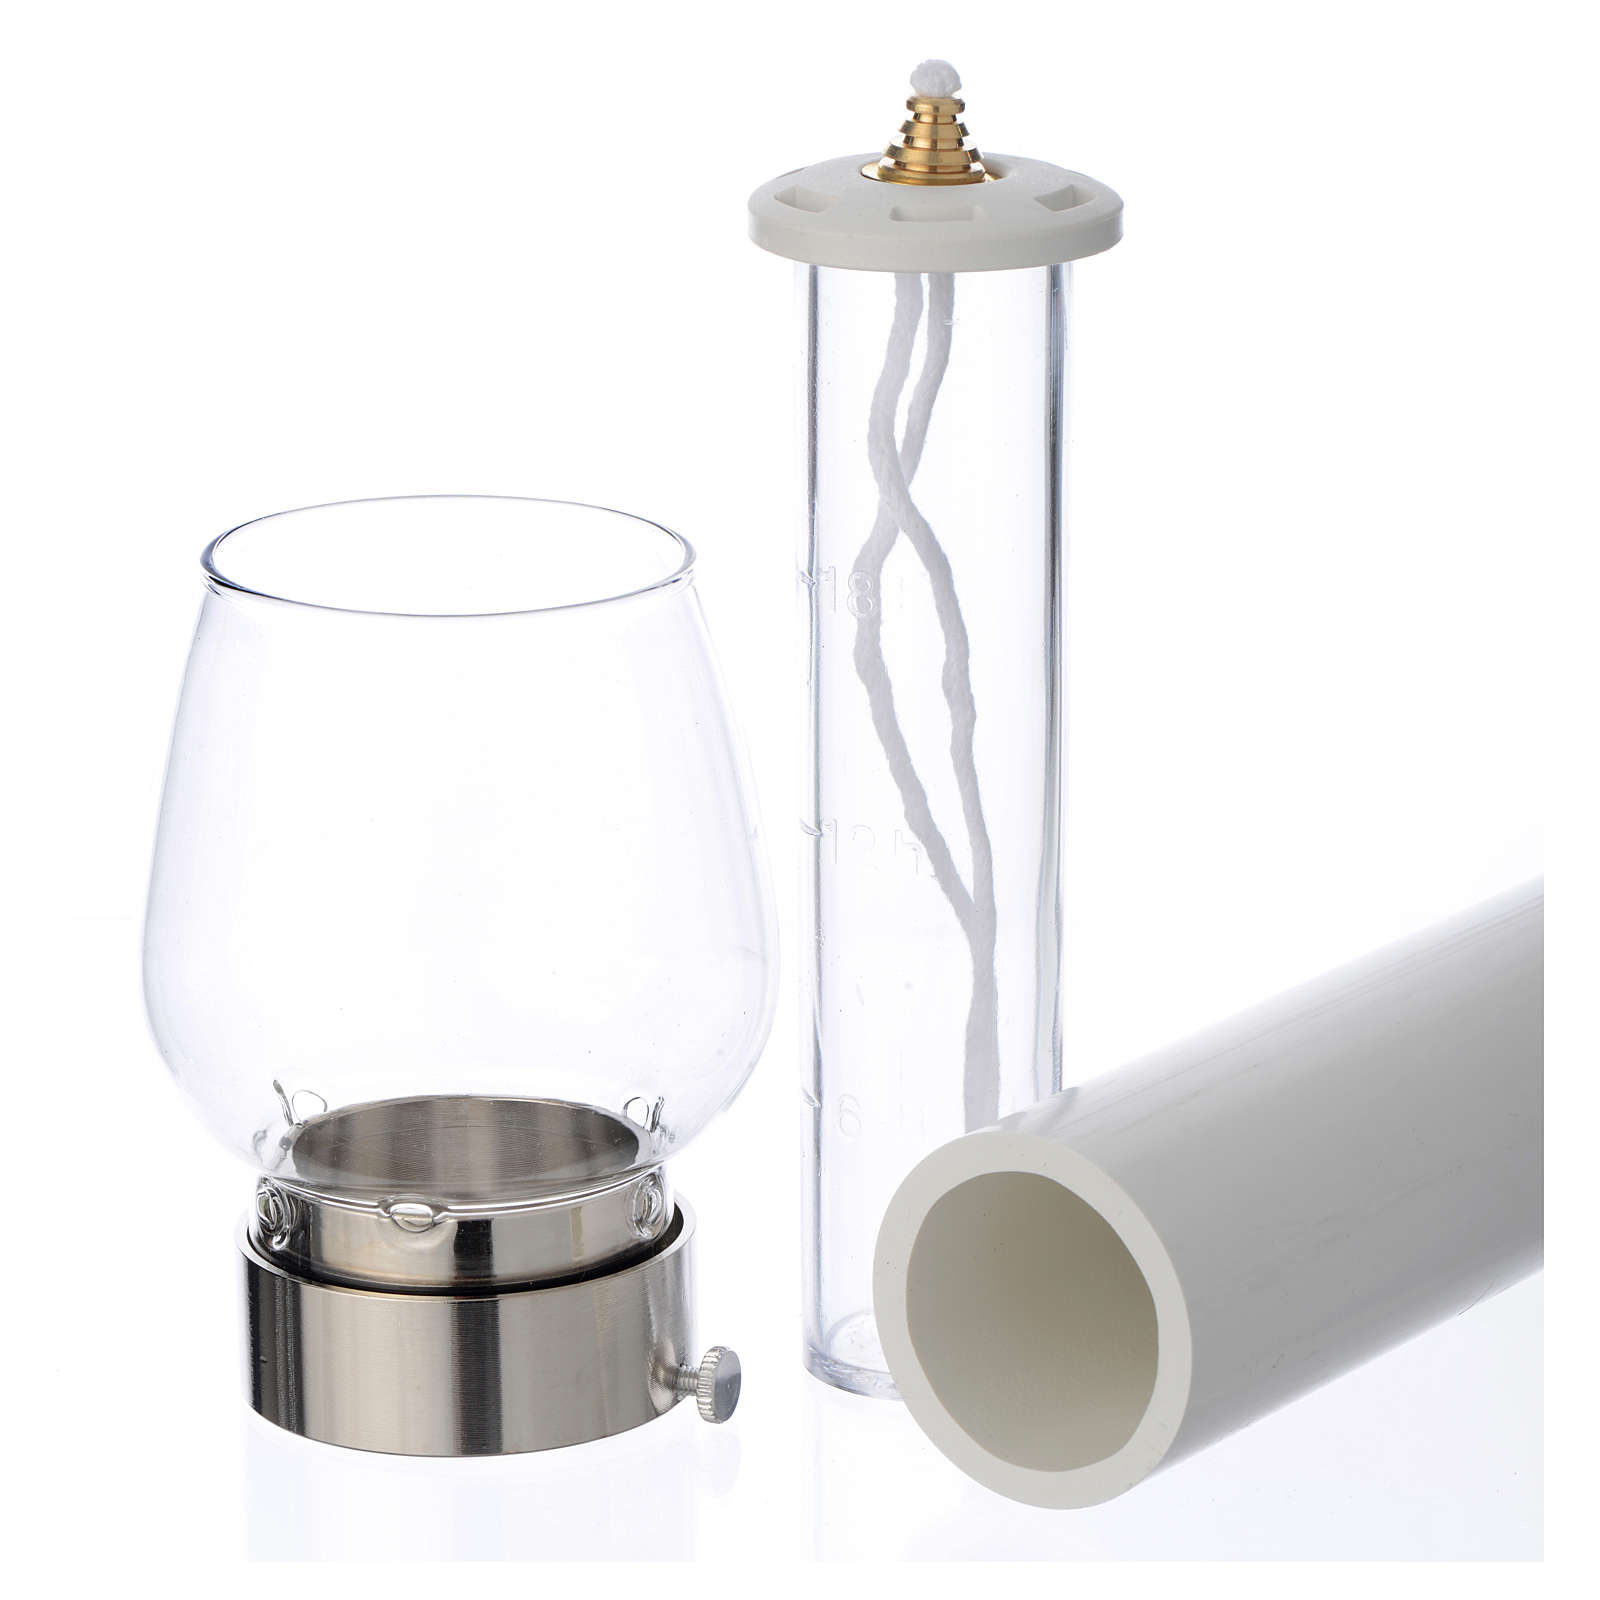 Wind-proof lamp, 70cm tall with silver base, 4cm diameter 3